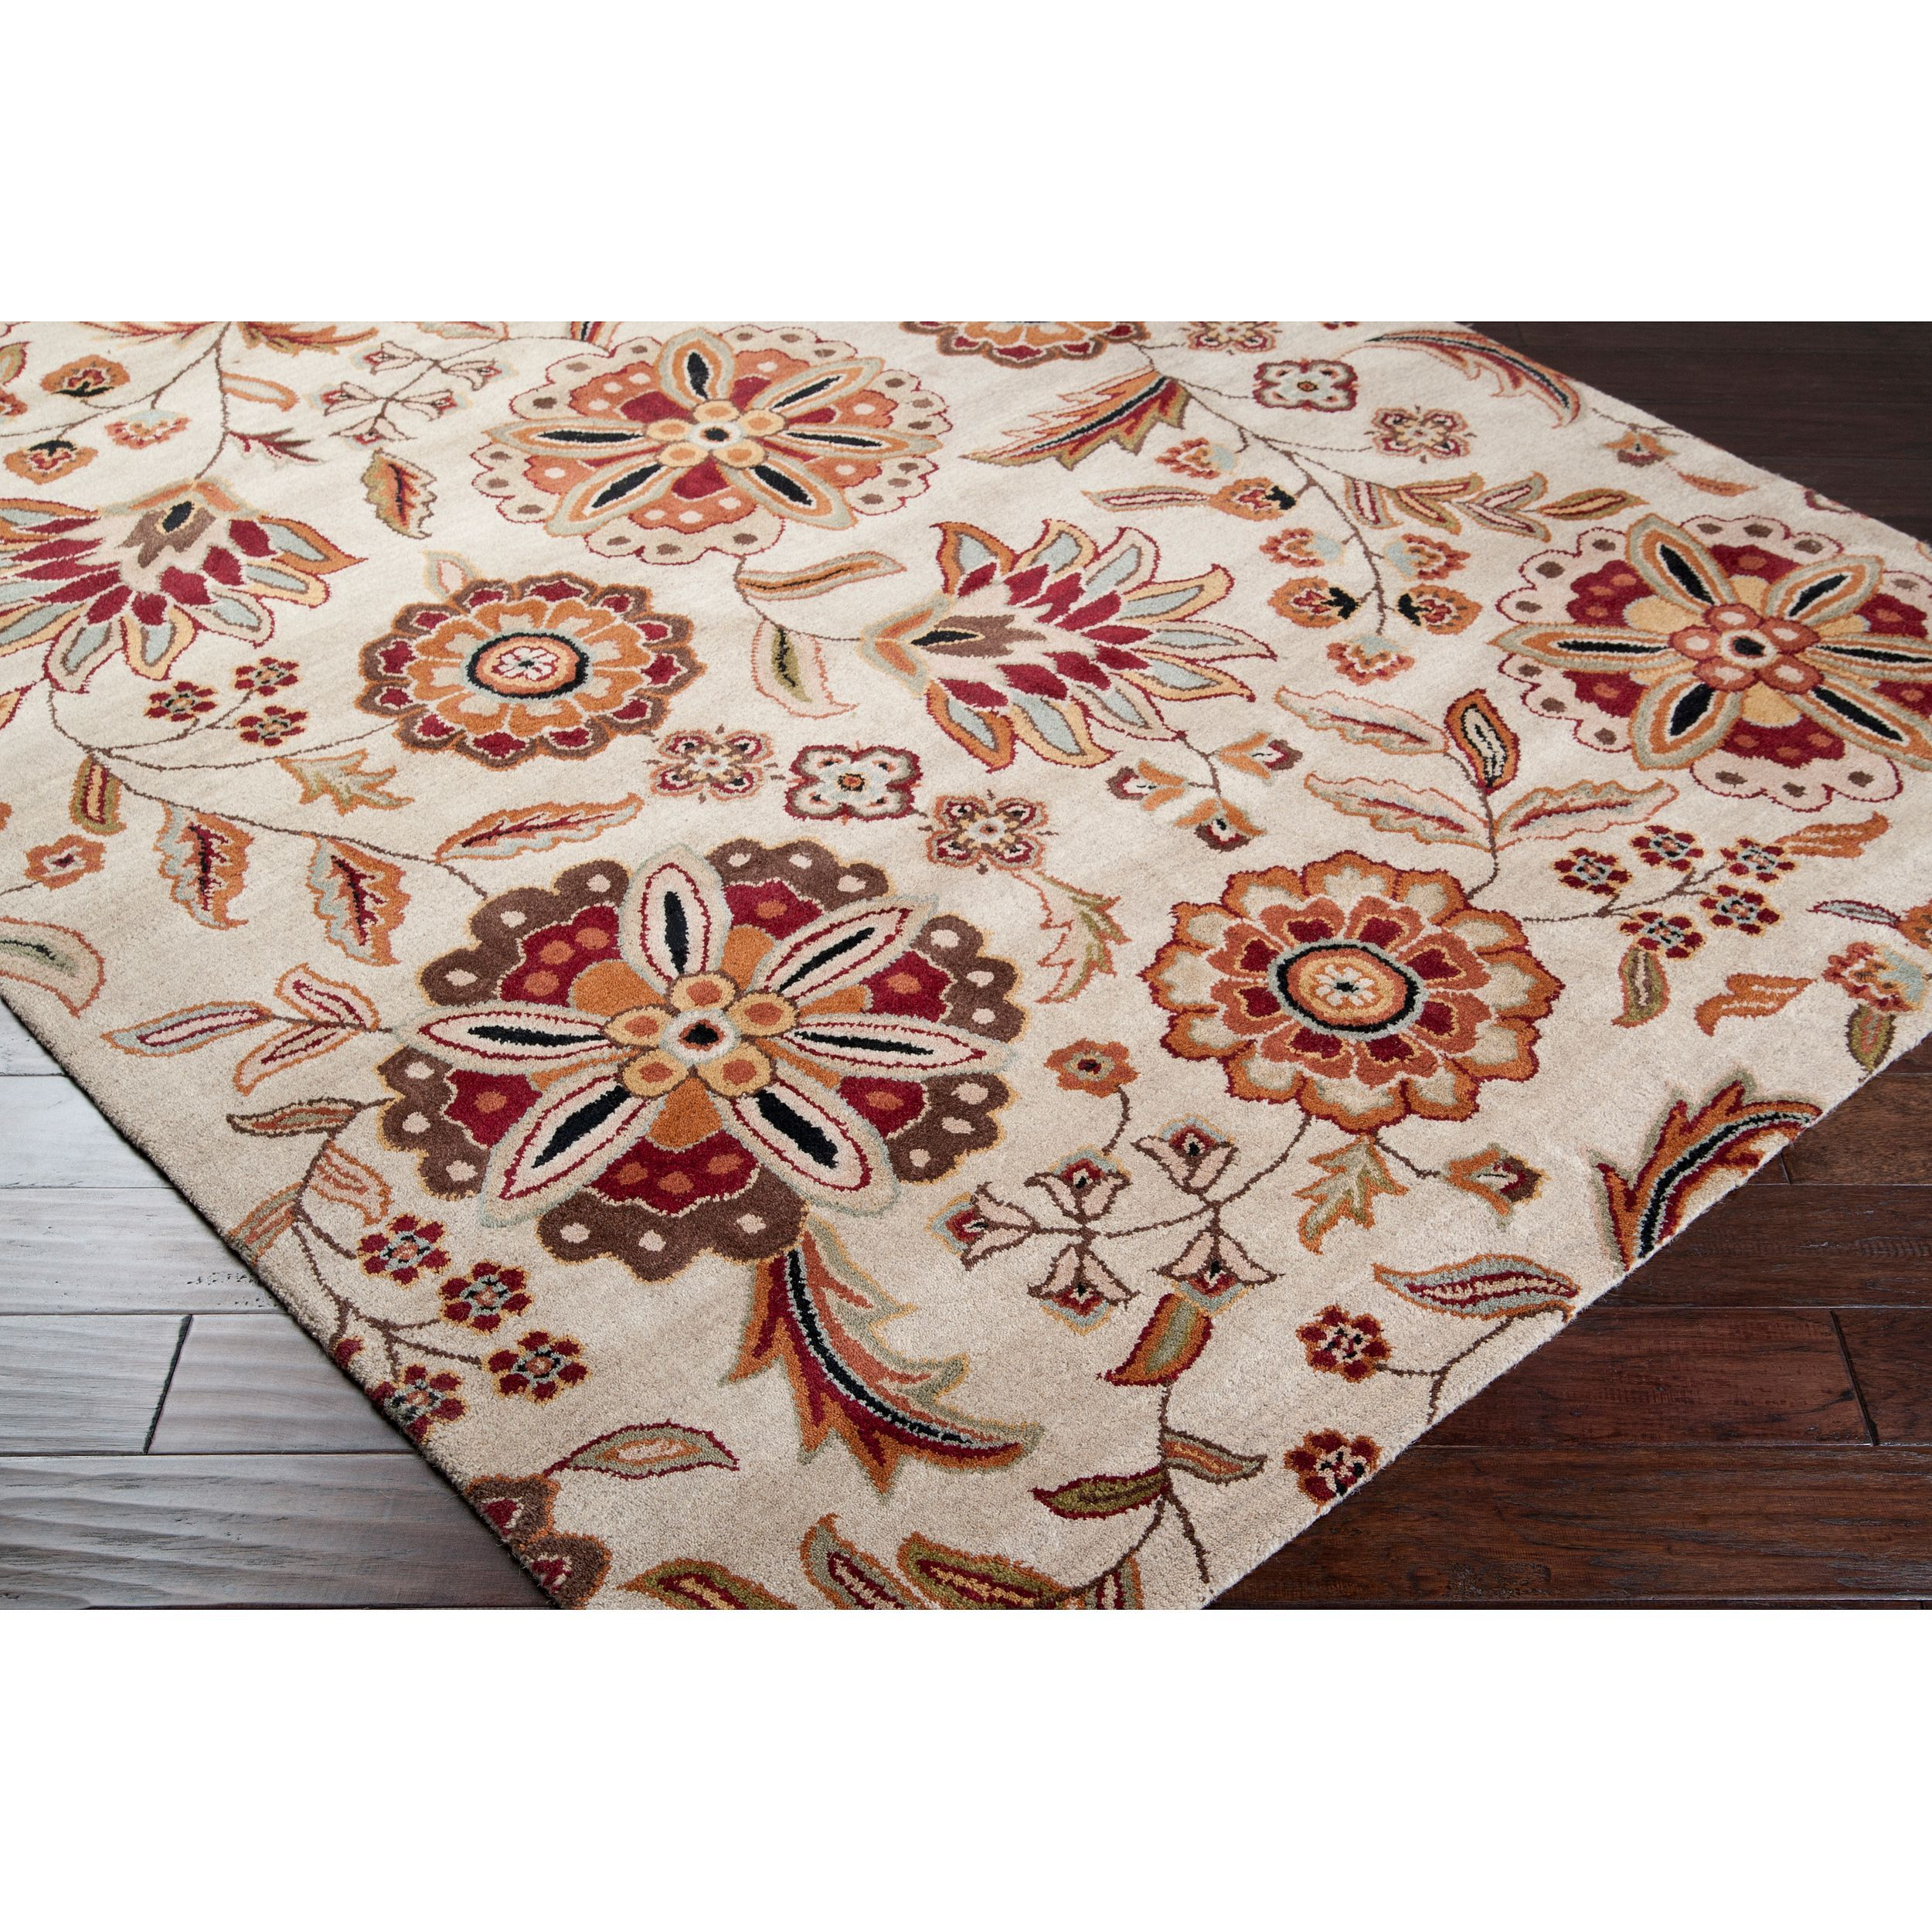 Hand Tufted Whimsy Beige Floral Wool Rug 8 X 11 Ivory Size 8